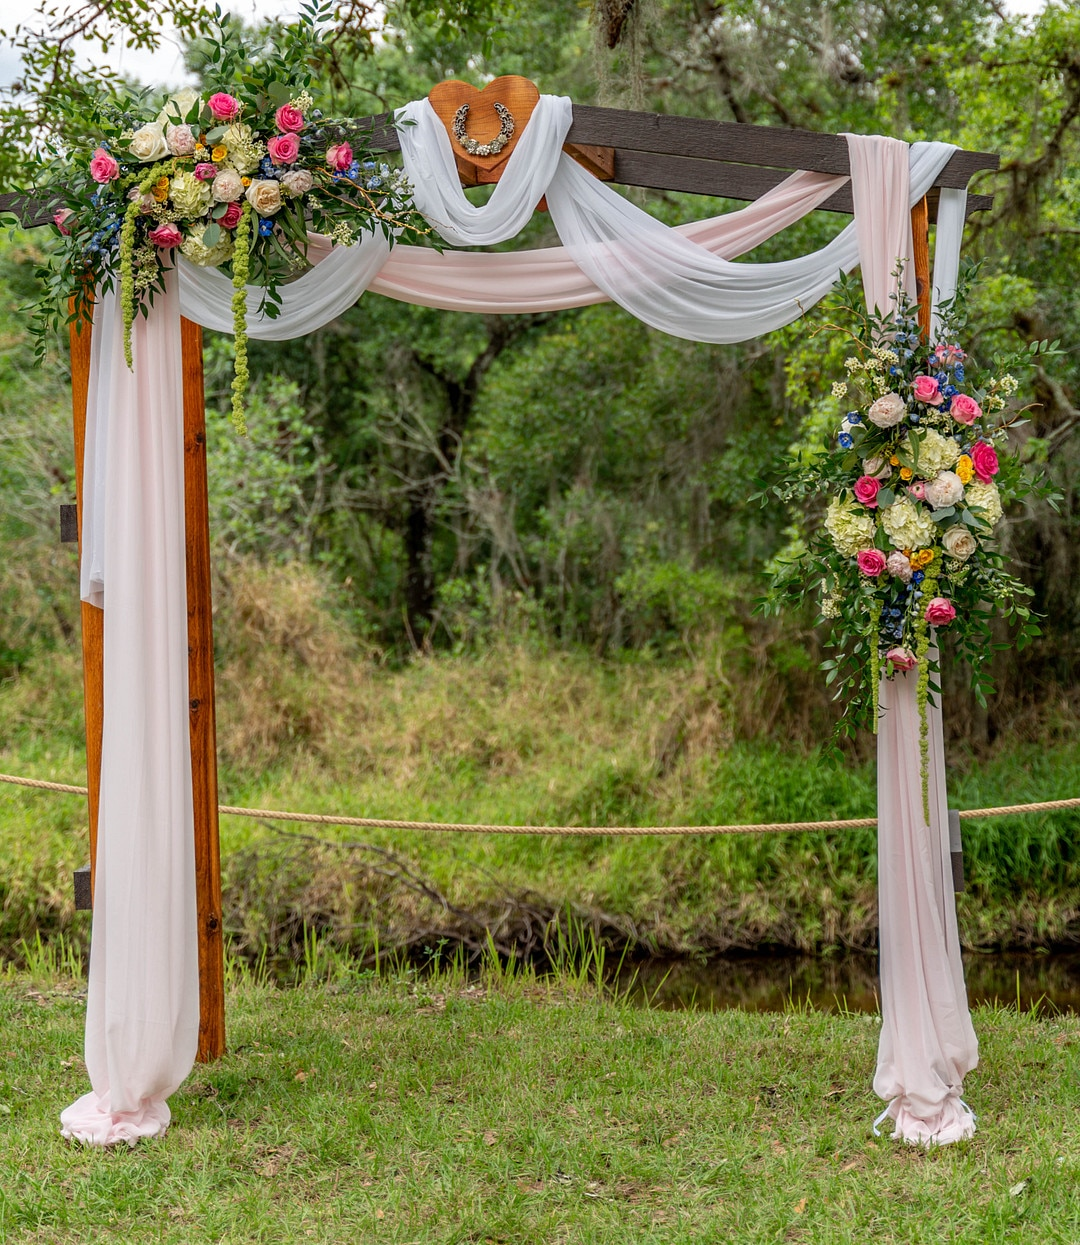 square wooden ceremony arch outisde with light pink and white drapery around it and two large flower arrangements hooked to it